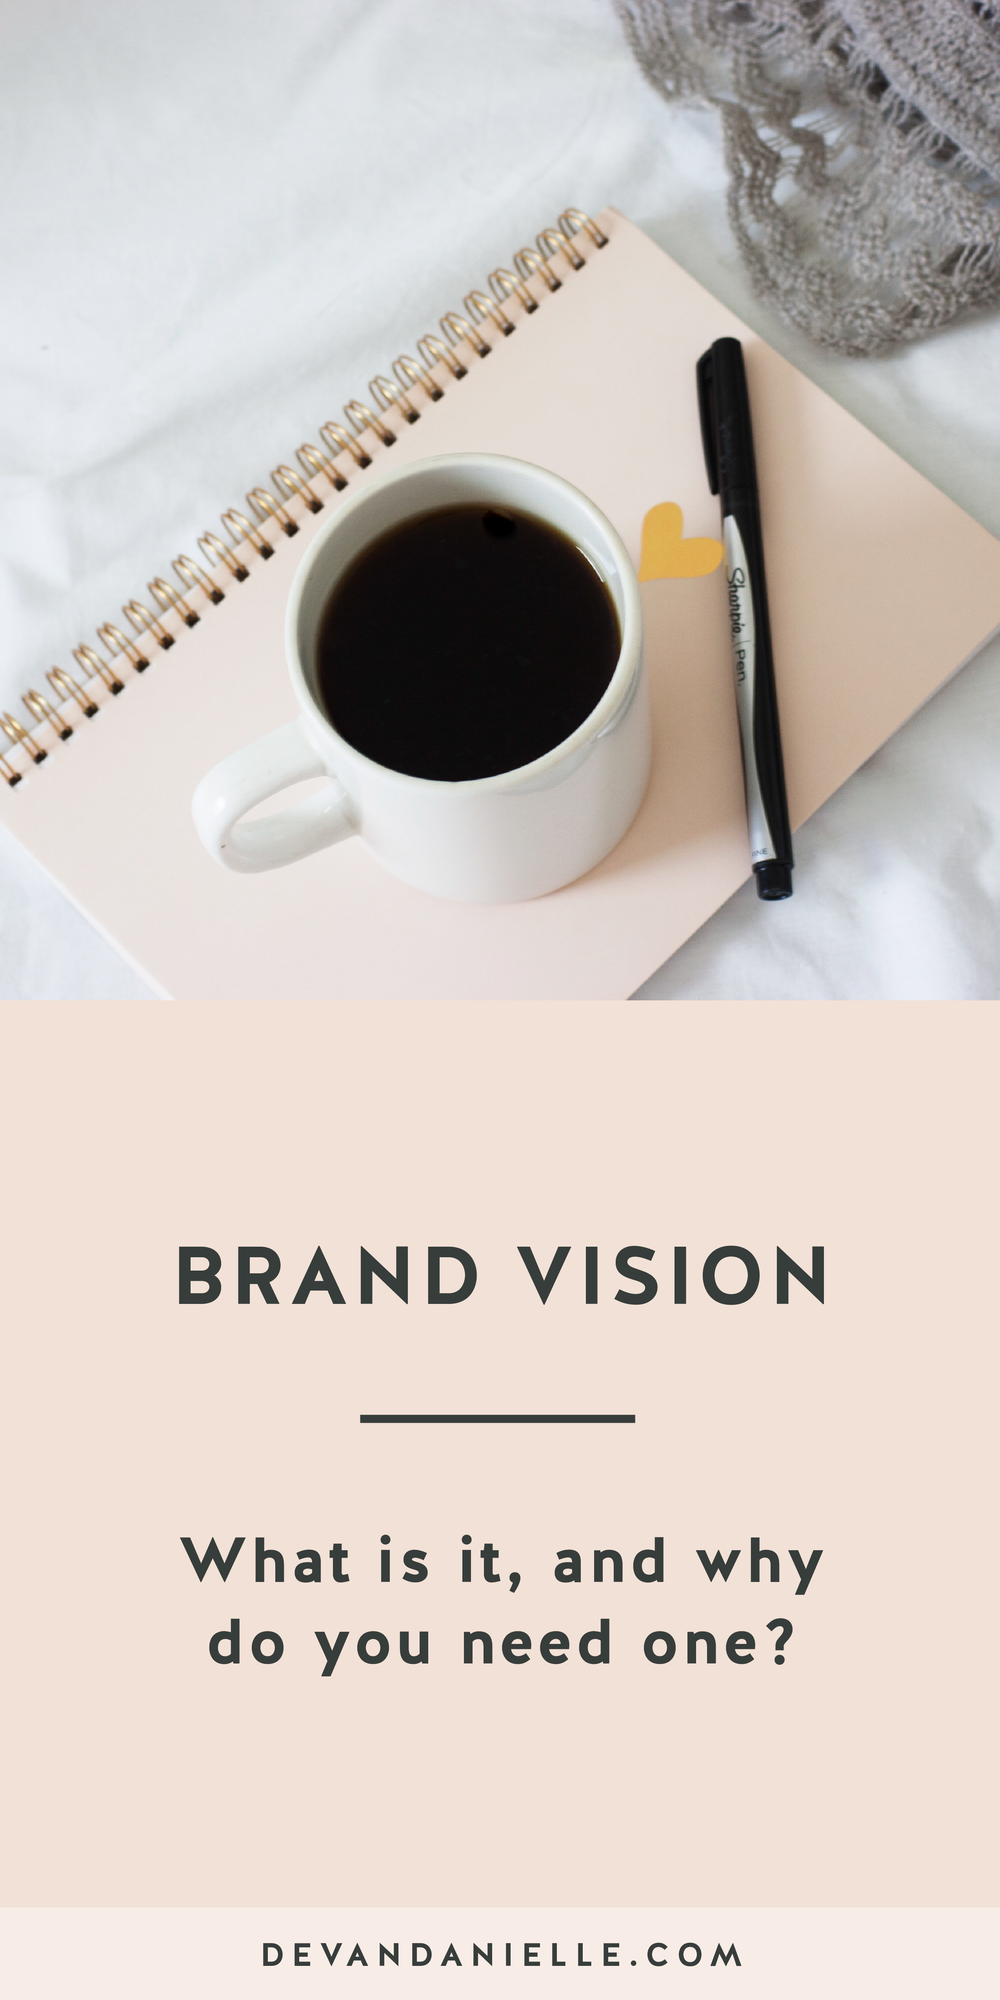 Brand Vision: What is it, and why do you need one?